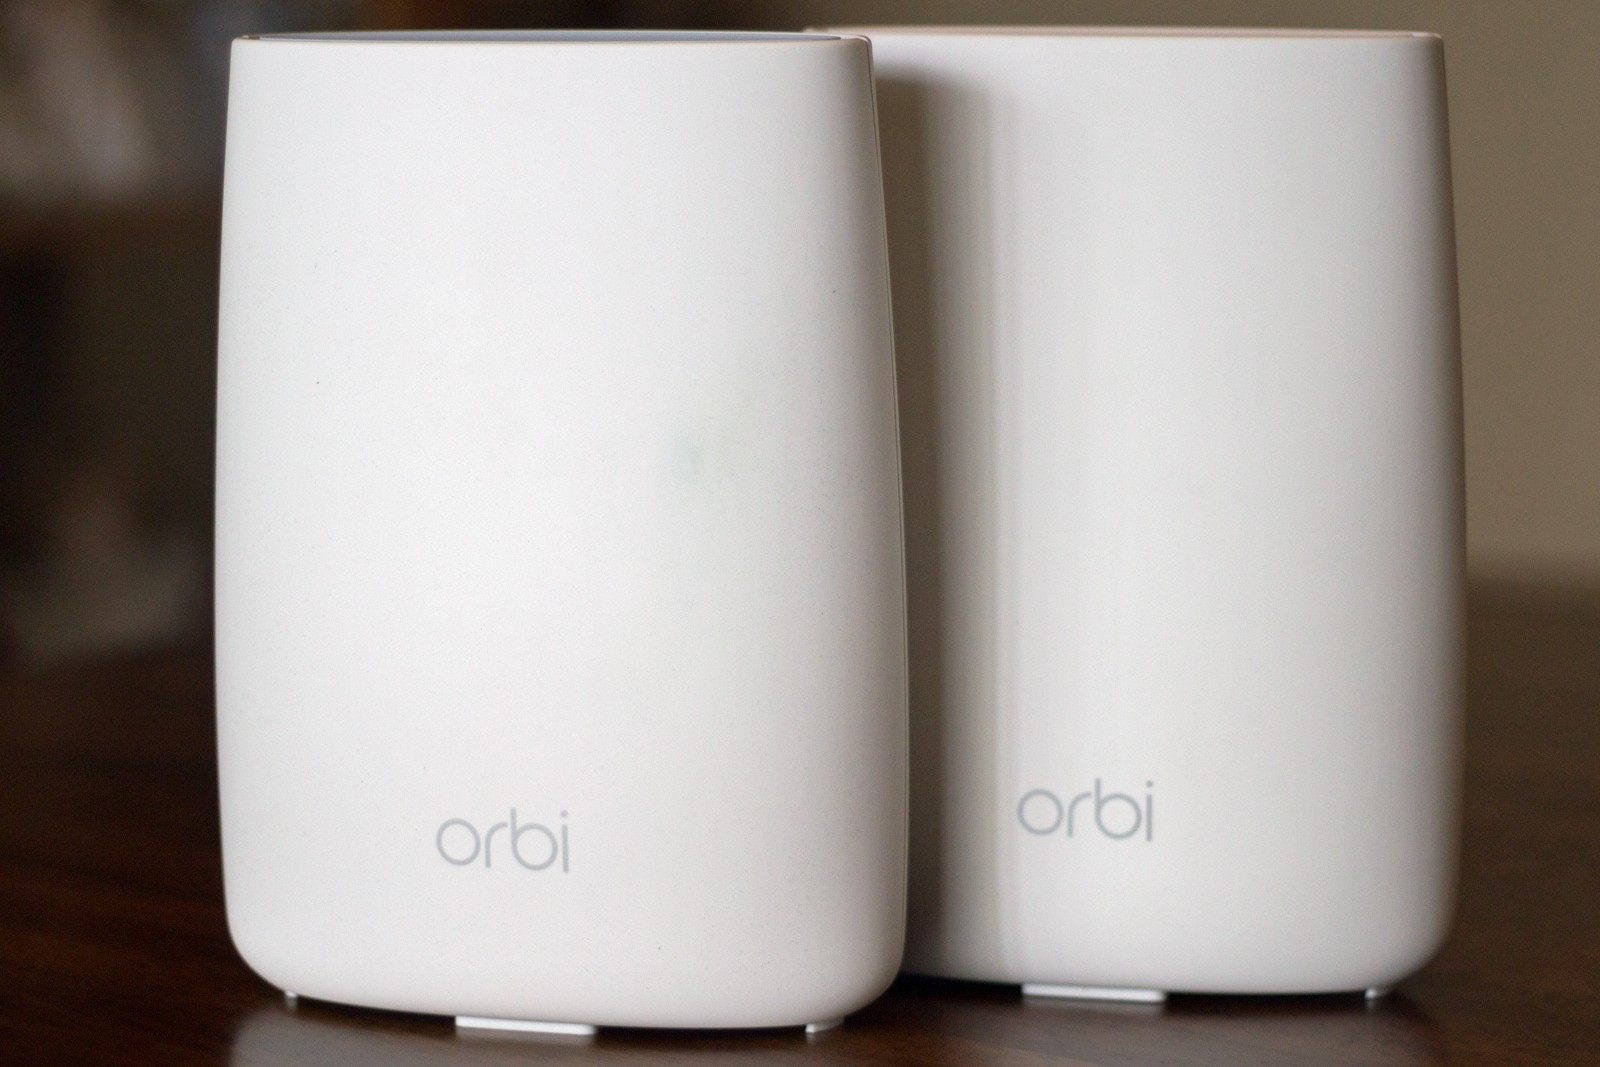 How do I reset my Orbi WiFi password?